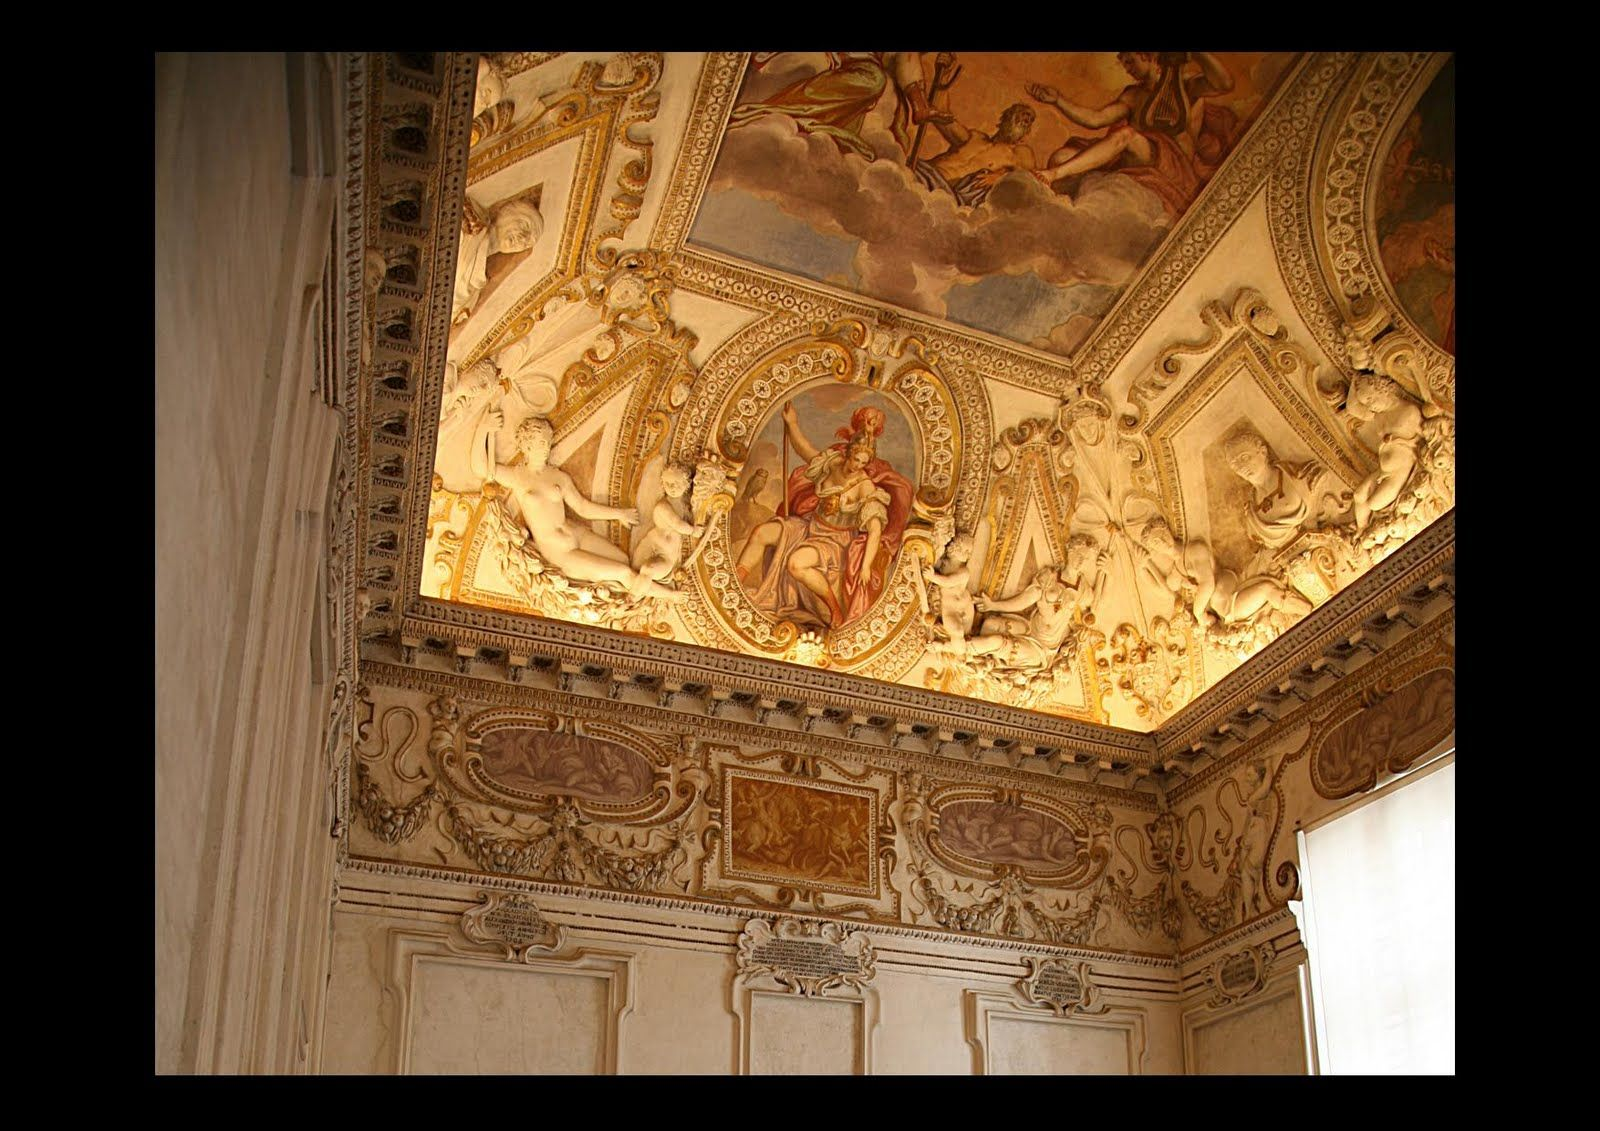 The rich and luxurious interiors of Renaissance Italy were unbelievable. The walls were decorated with frescos by the great artists of the day.